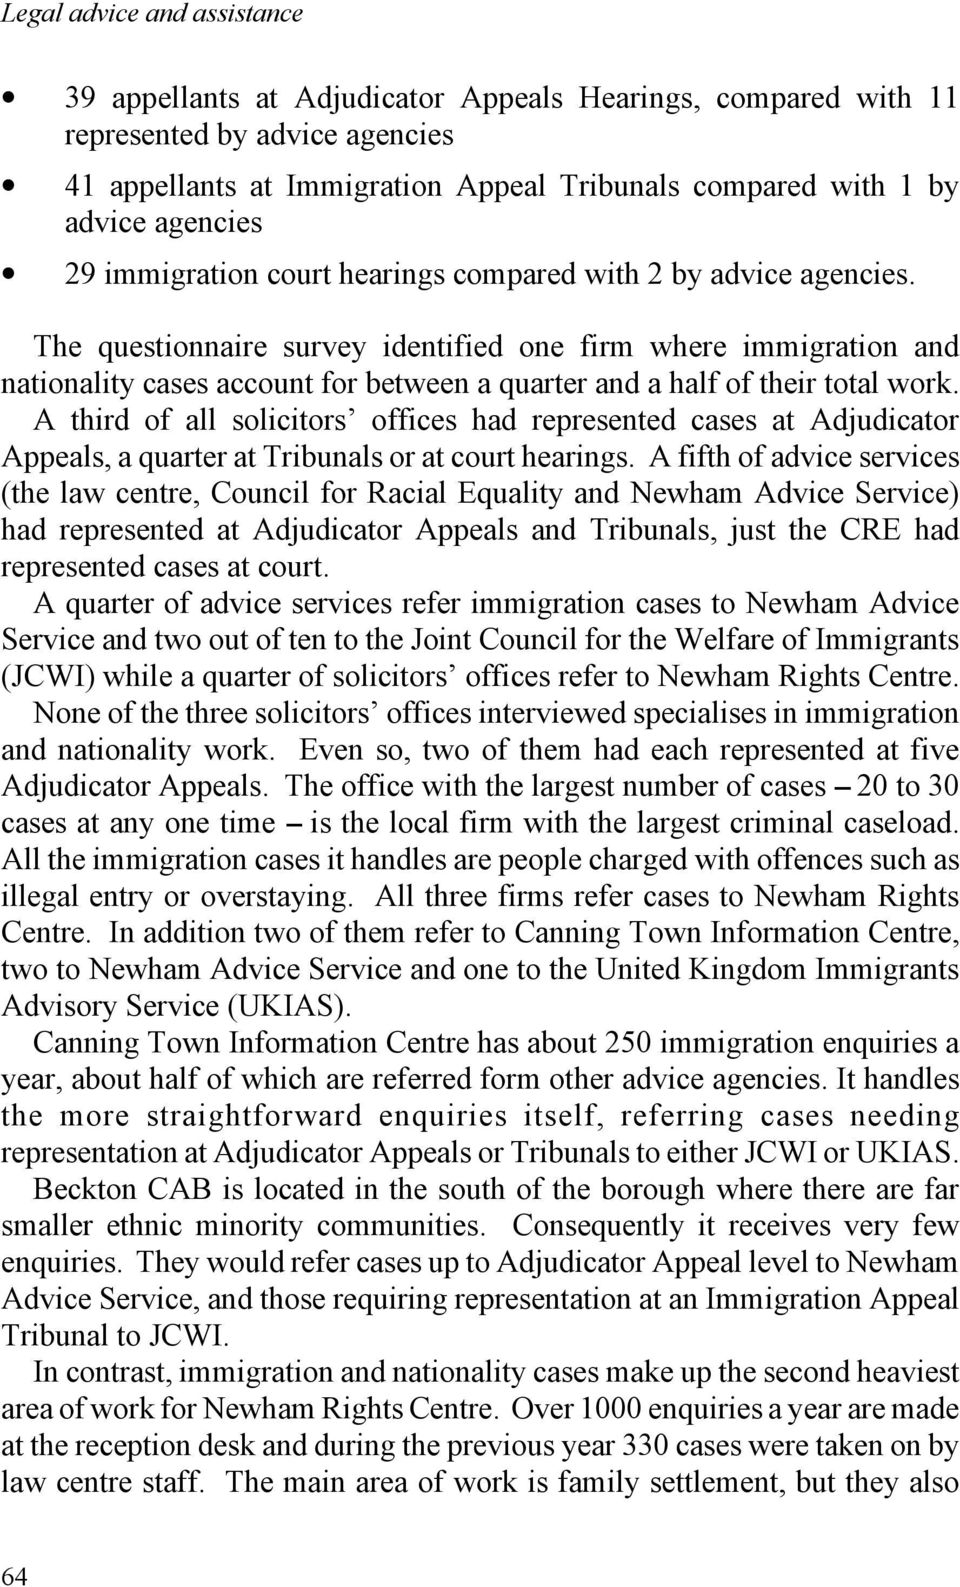 The questionnaire survey identified one firm where immigration and nationality cases account for between a quarter and a half of their total work.